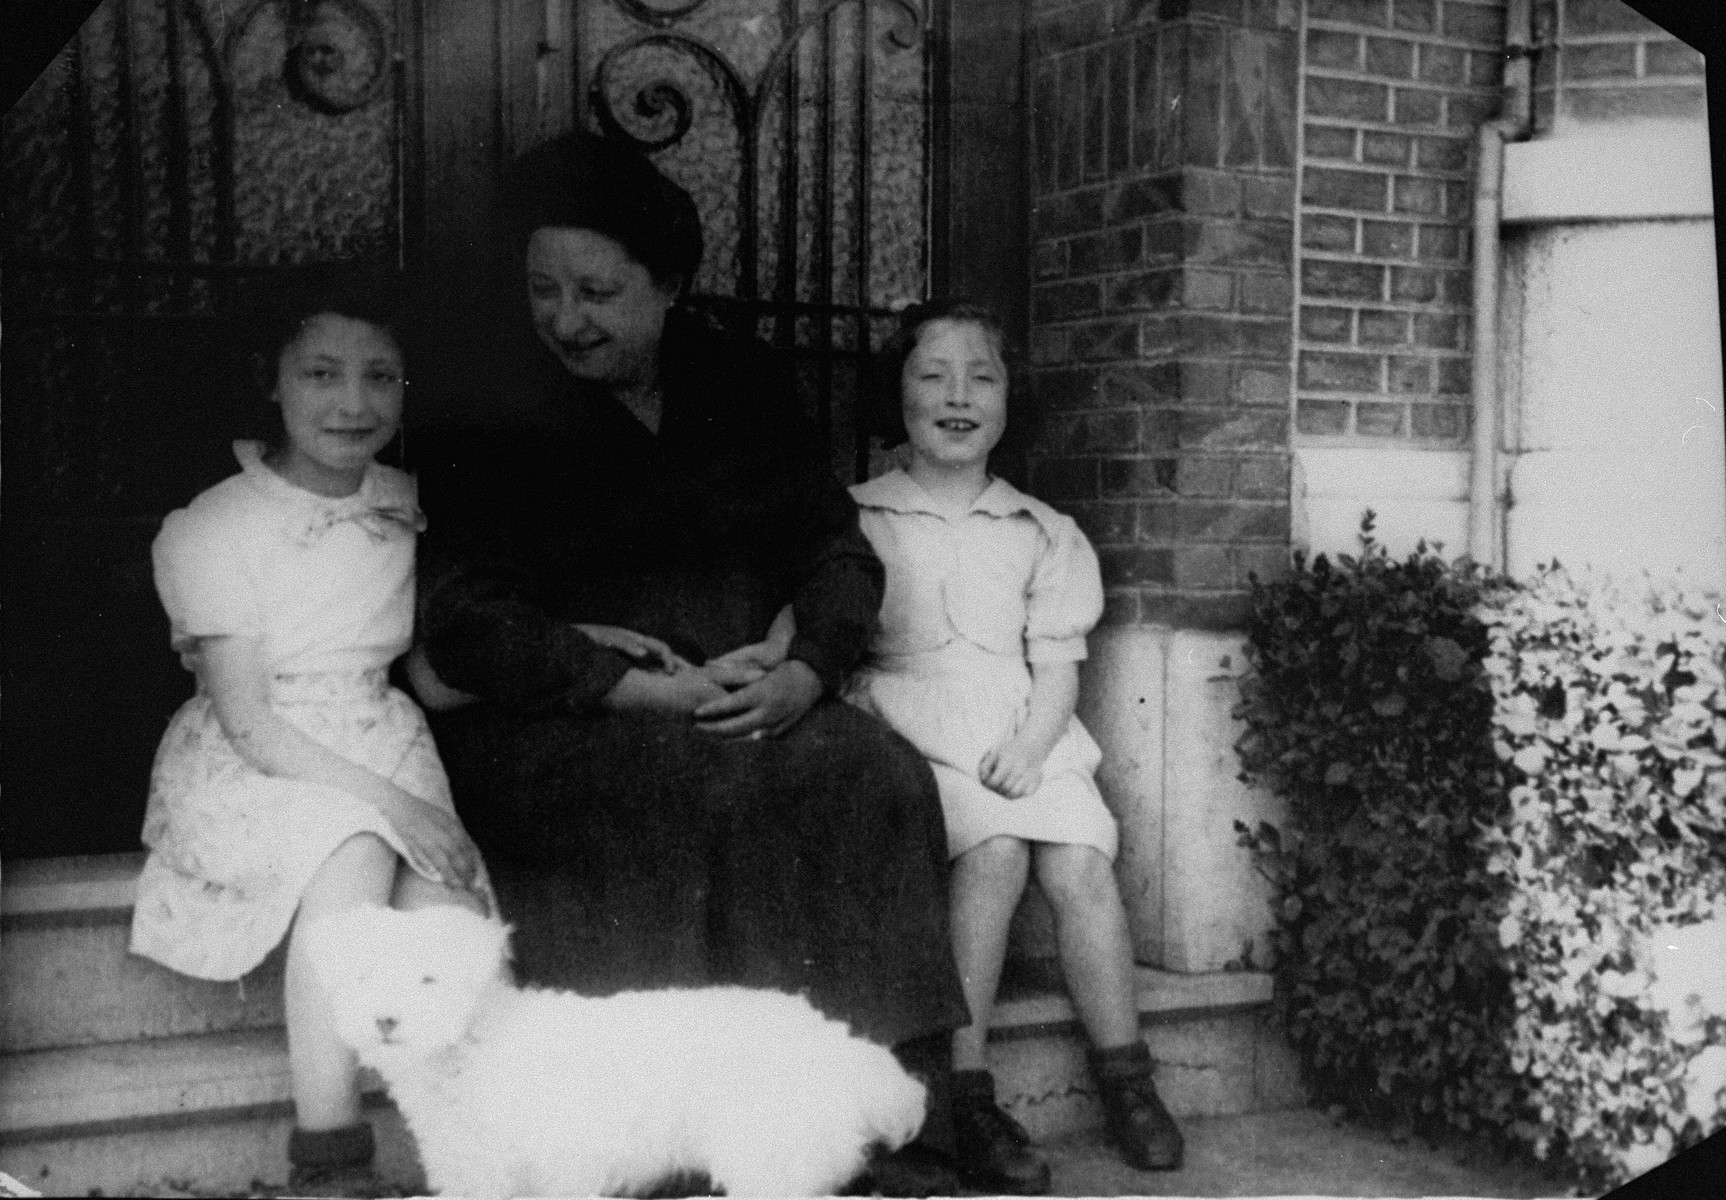 Margo and Annette Lederman, two Jewish children who lived in hiding with the van Buggenhout family during the war, pose with Clementine van Buggenhout, during a visit to her home after their removal to a Jewish orphanage.  Annette is the child who is crying.